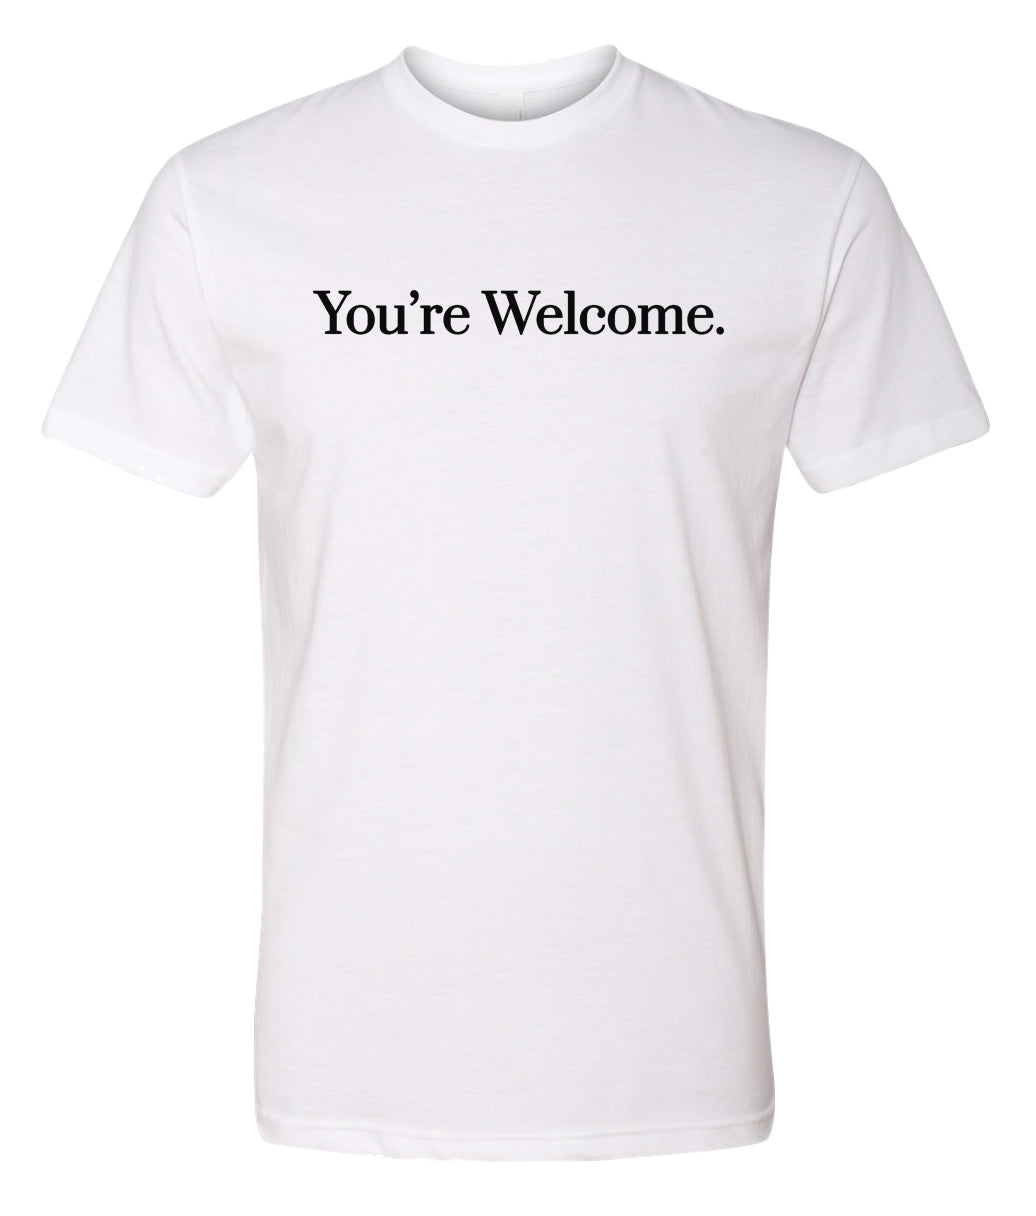 white you're welcome crewneck t shirt